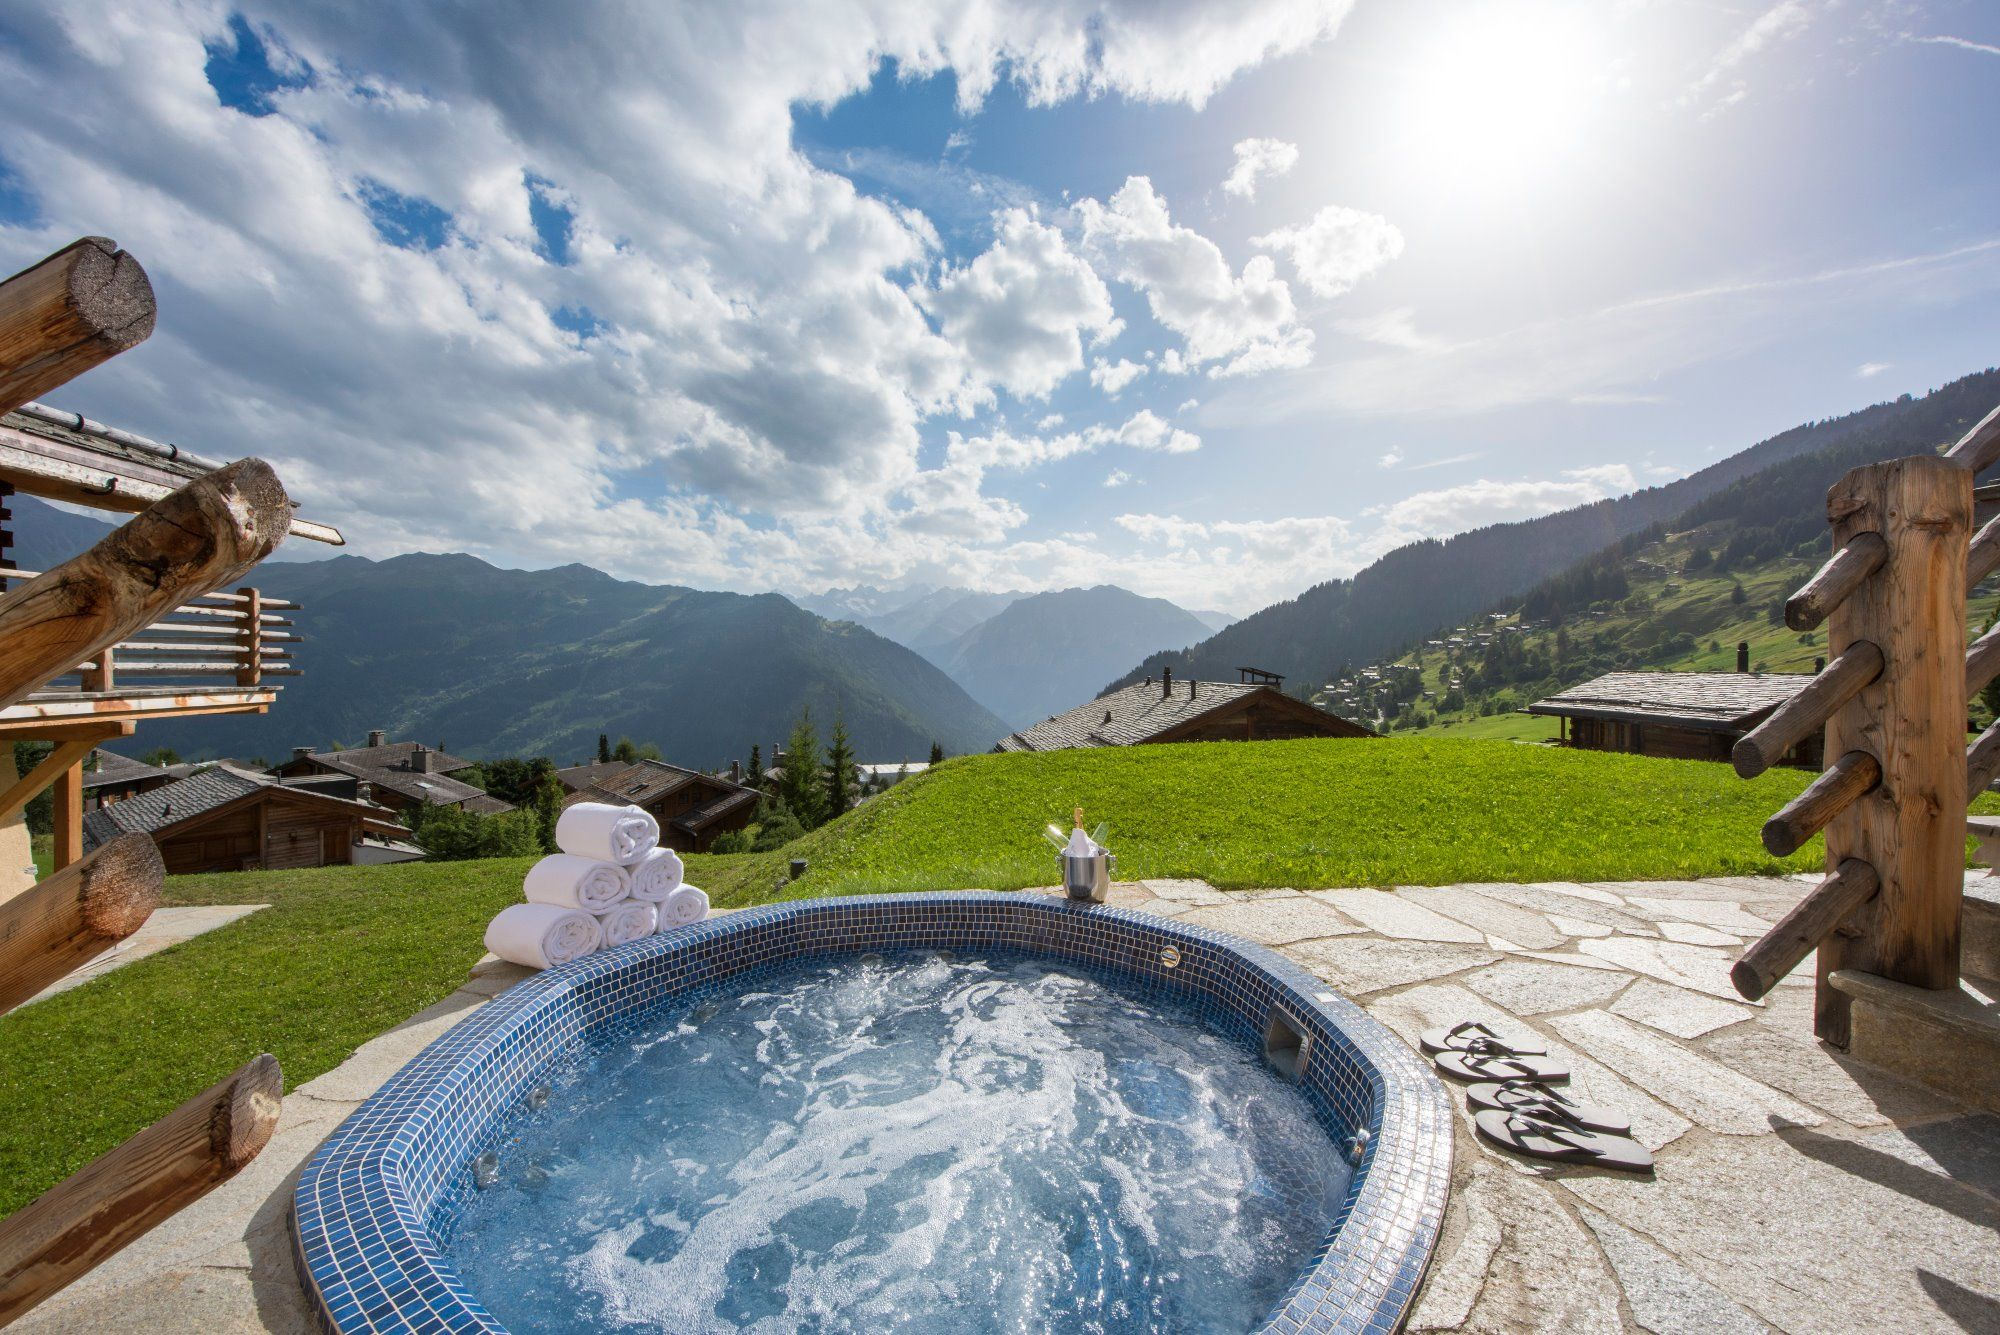 LUXURY SUMMER CHALET SWITZERLAND